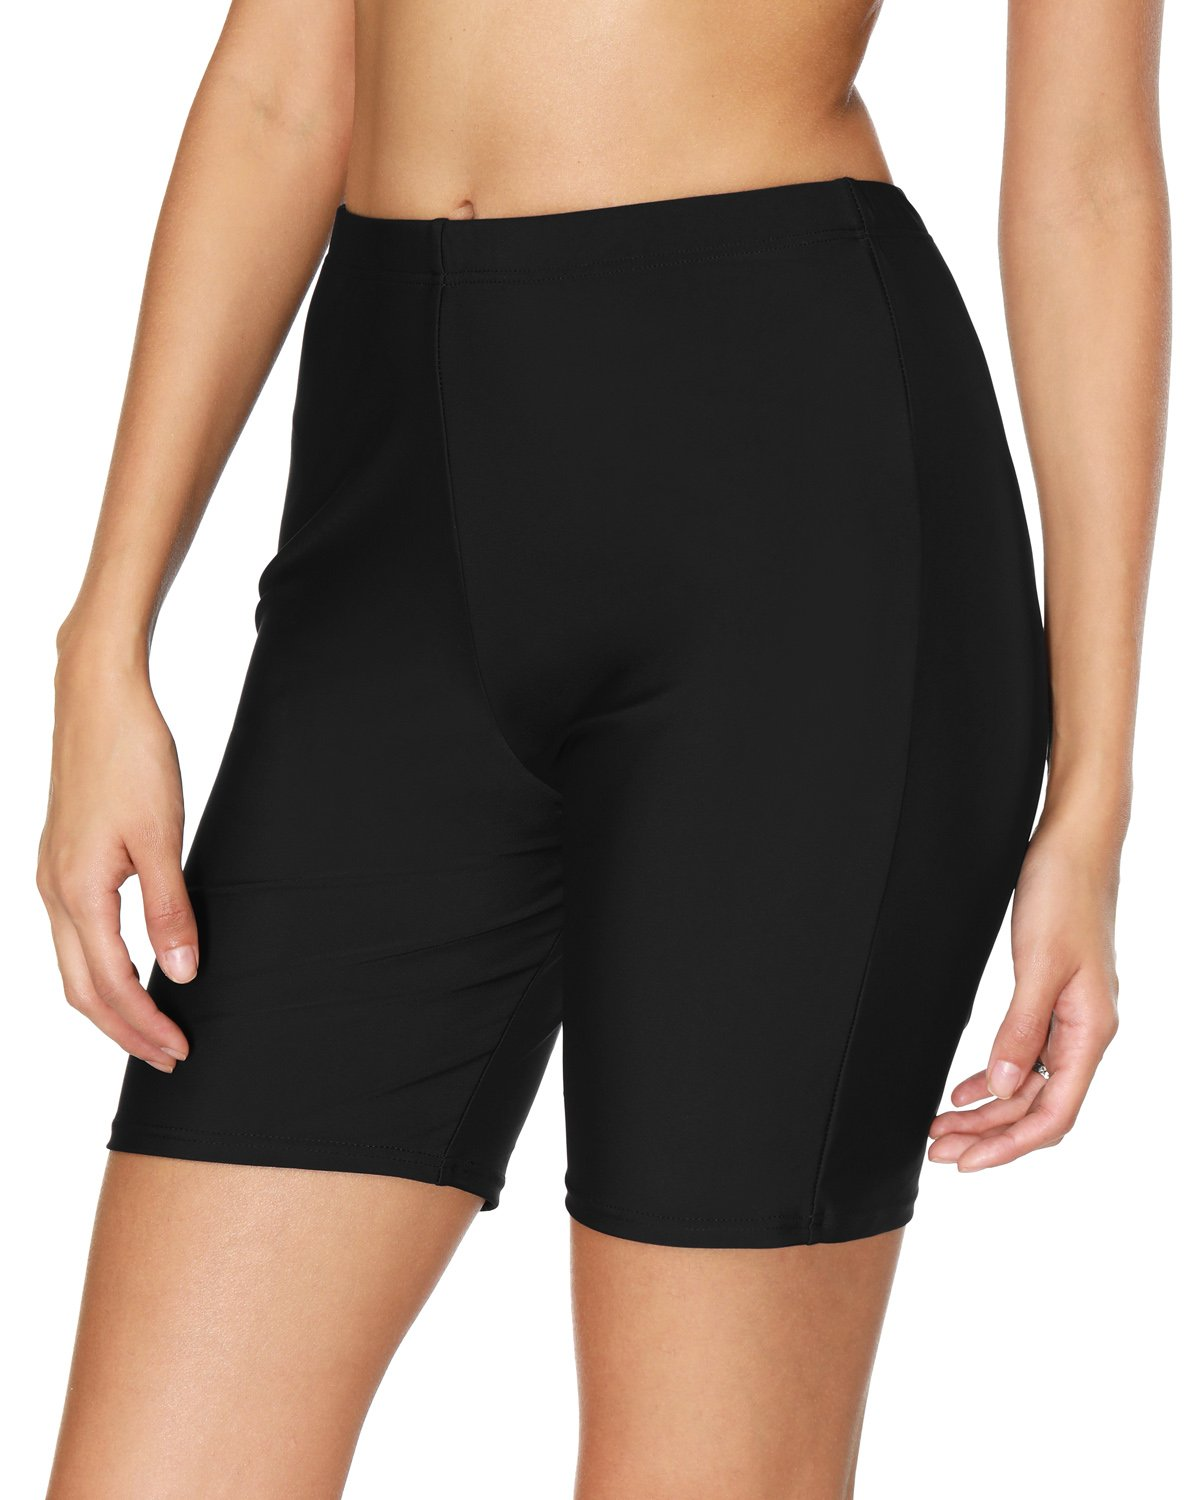 V for City Women's Stretch Beach Shorts Board Shorts Solid Sport Swimsuits Bottom Black L